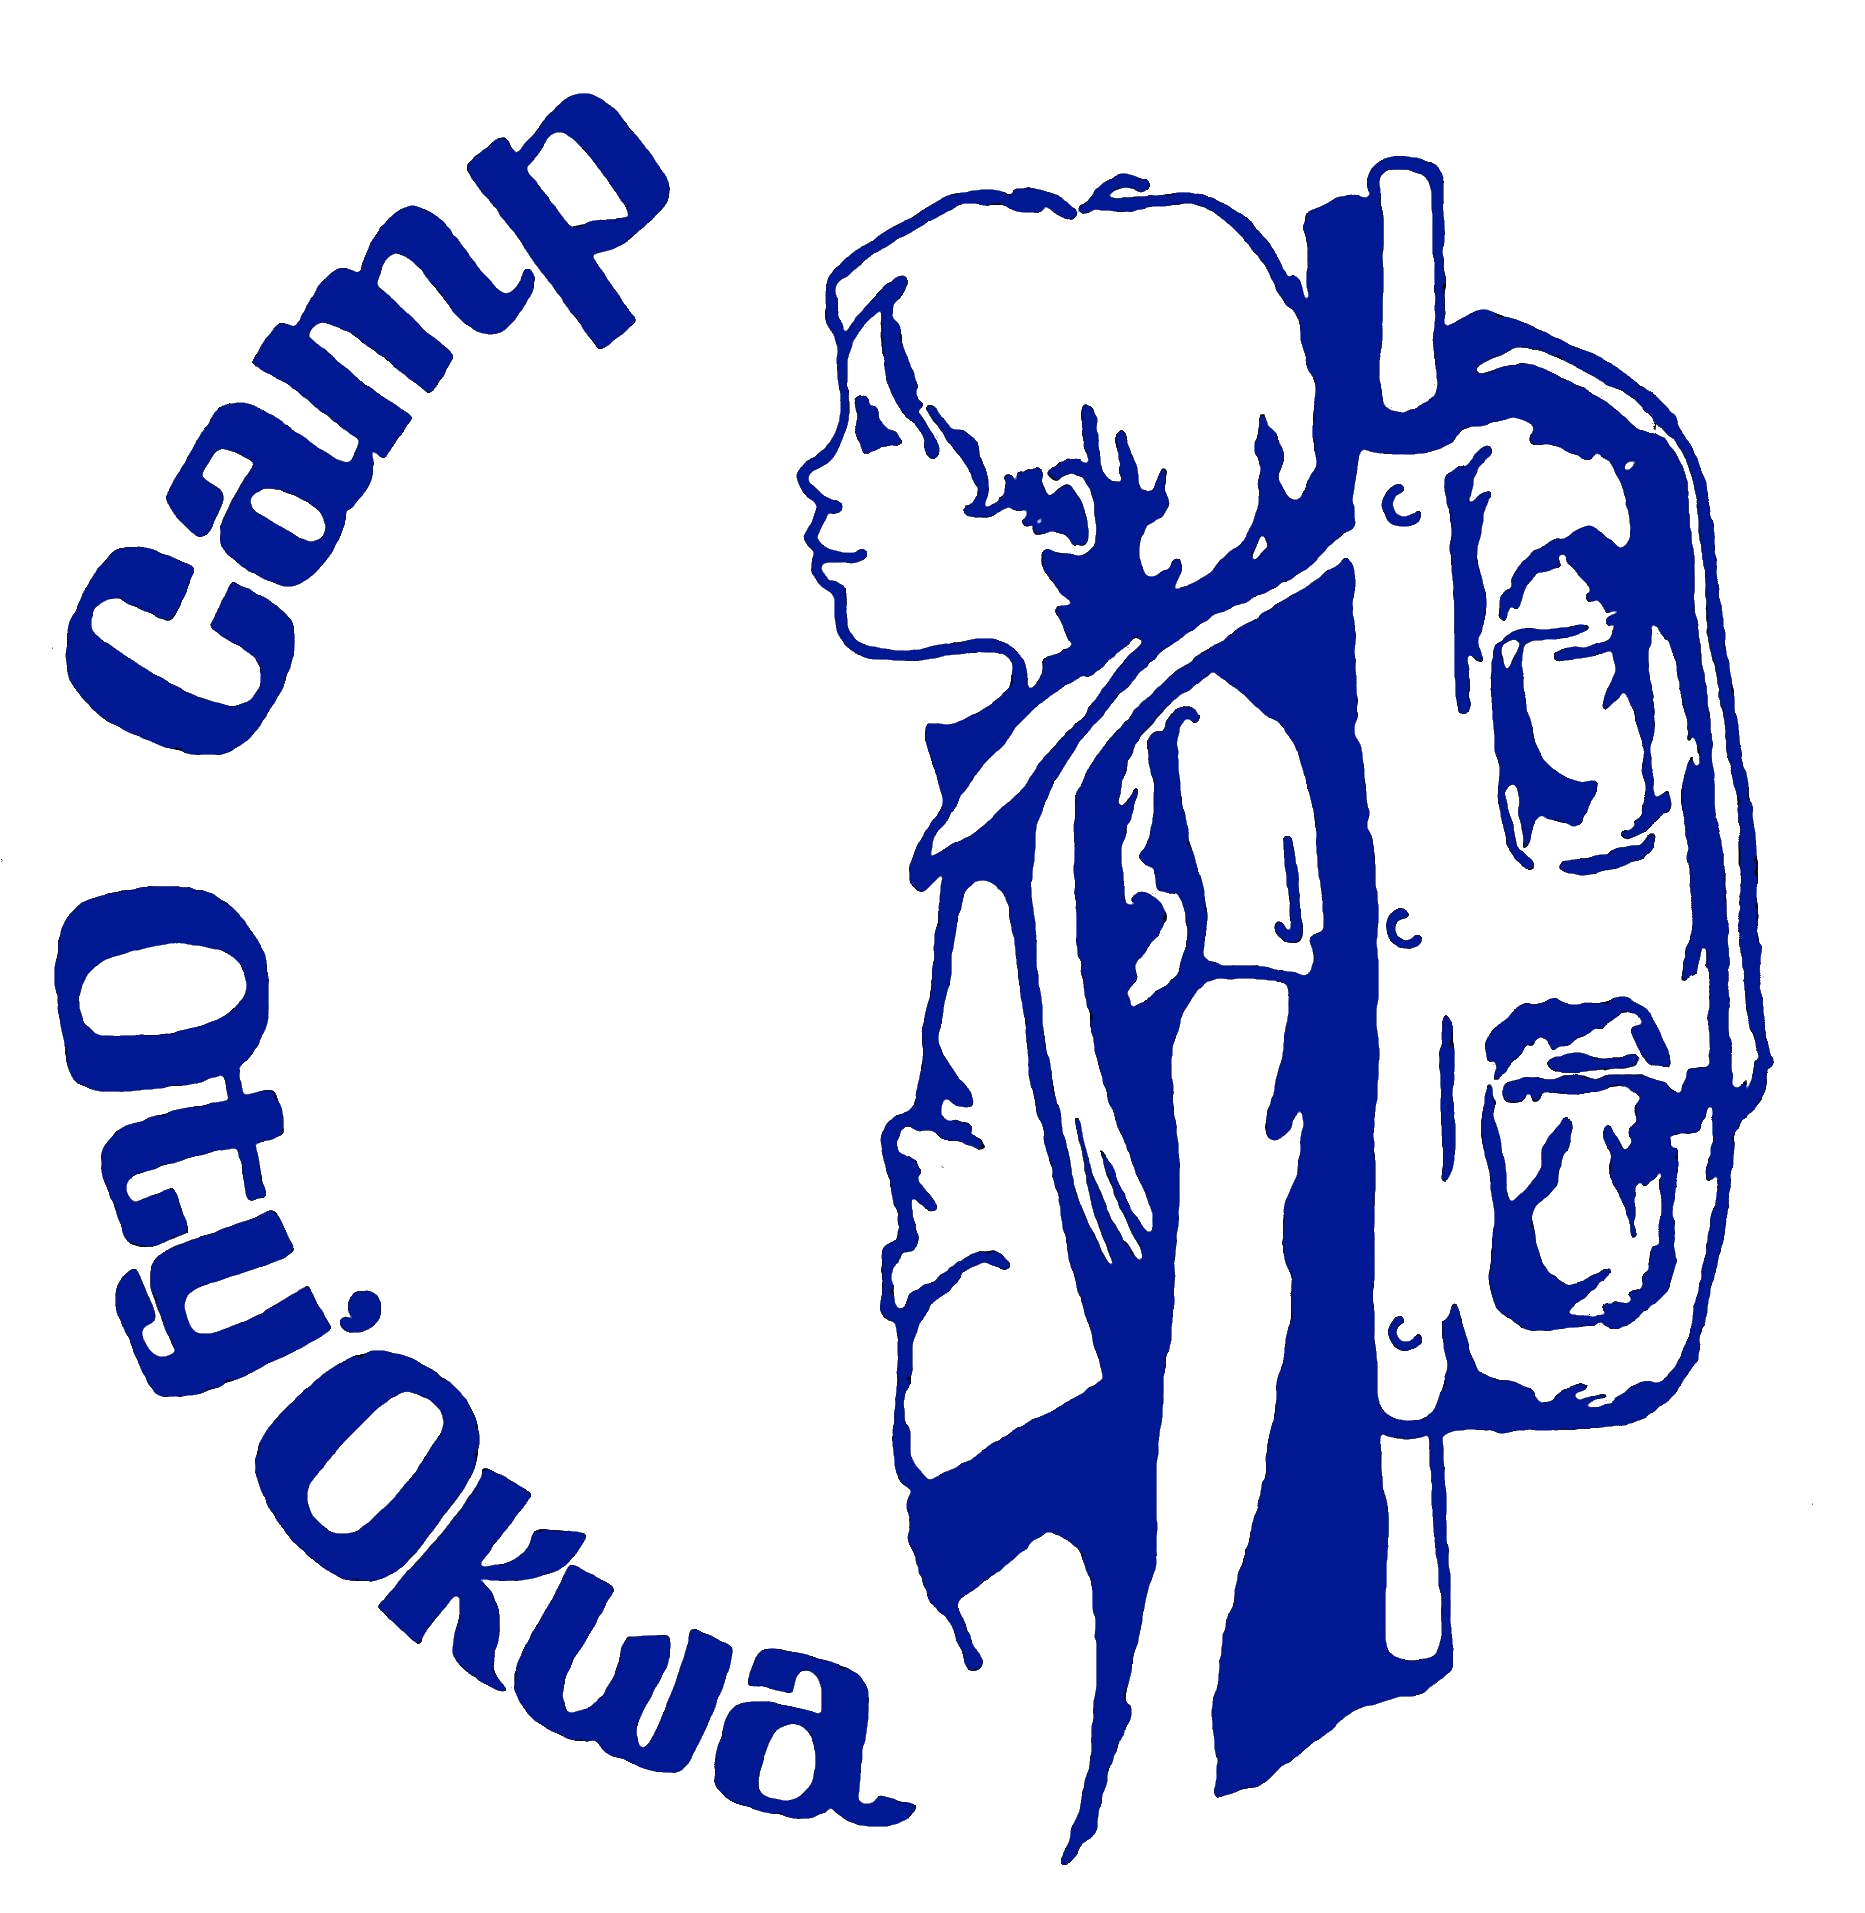 camp boy JPEG (Blue)